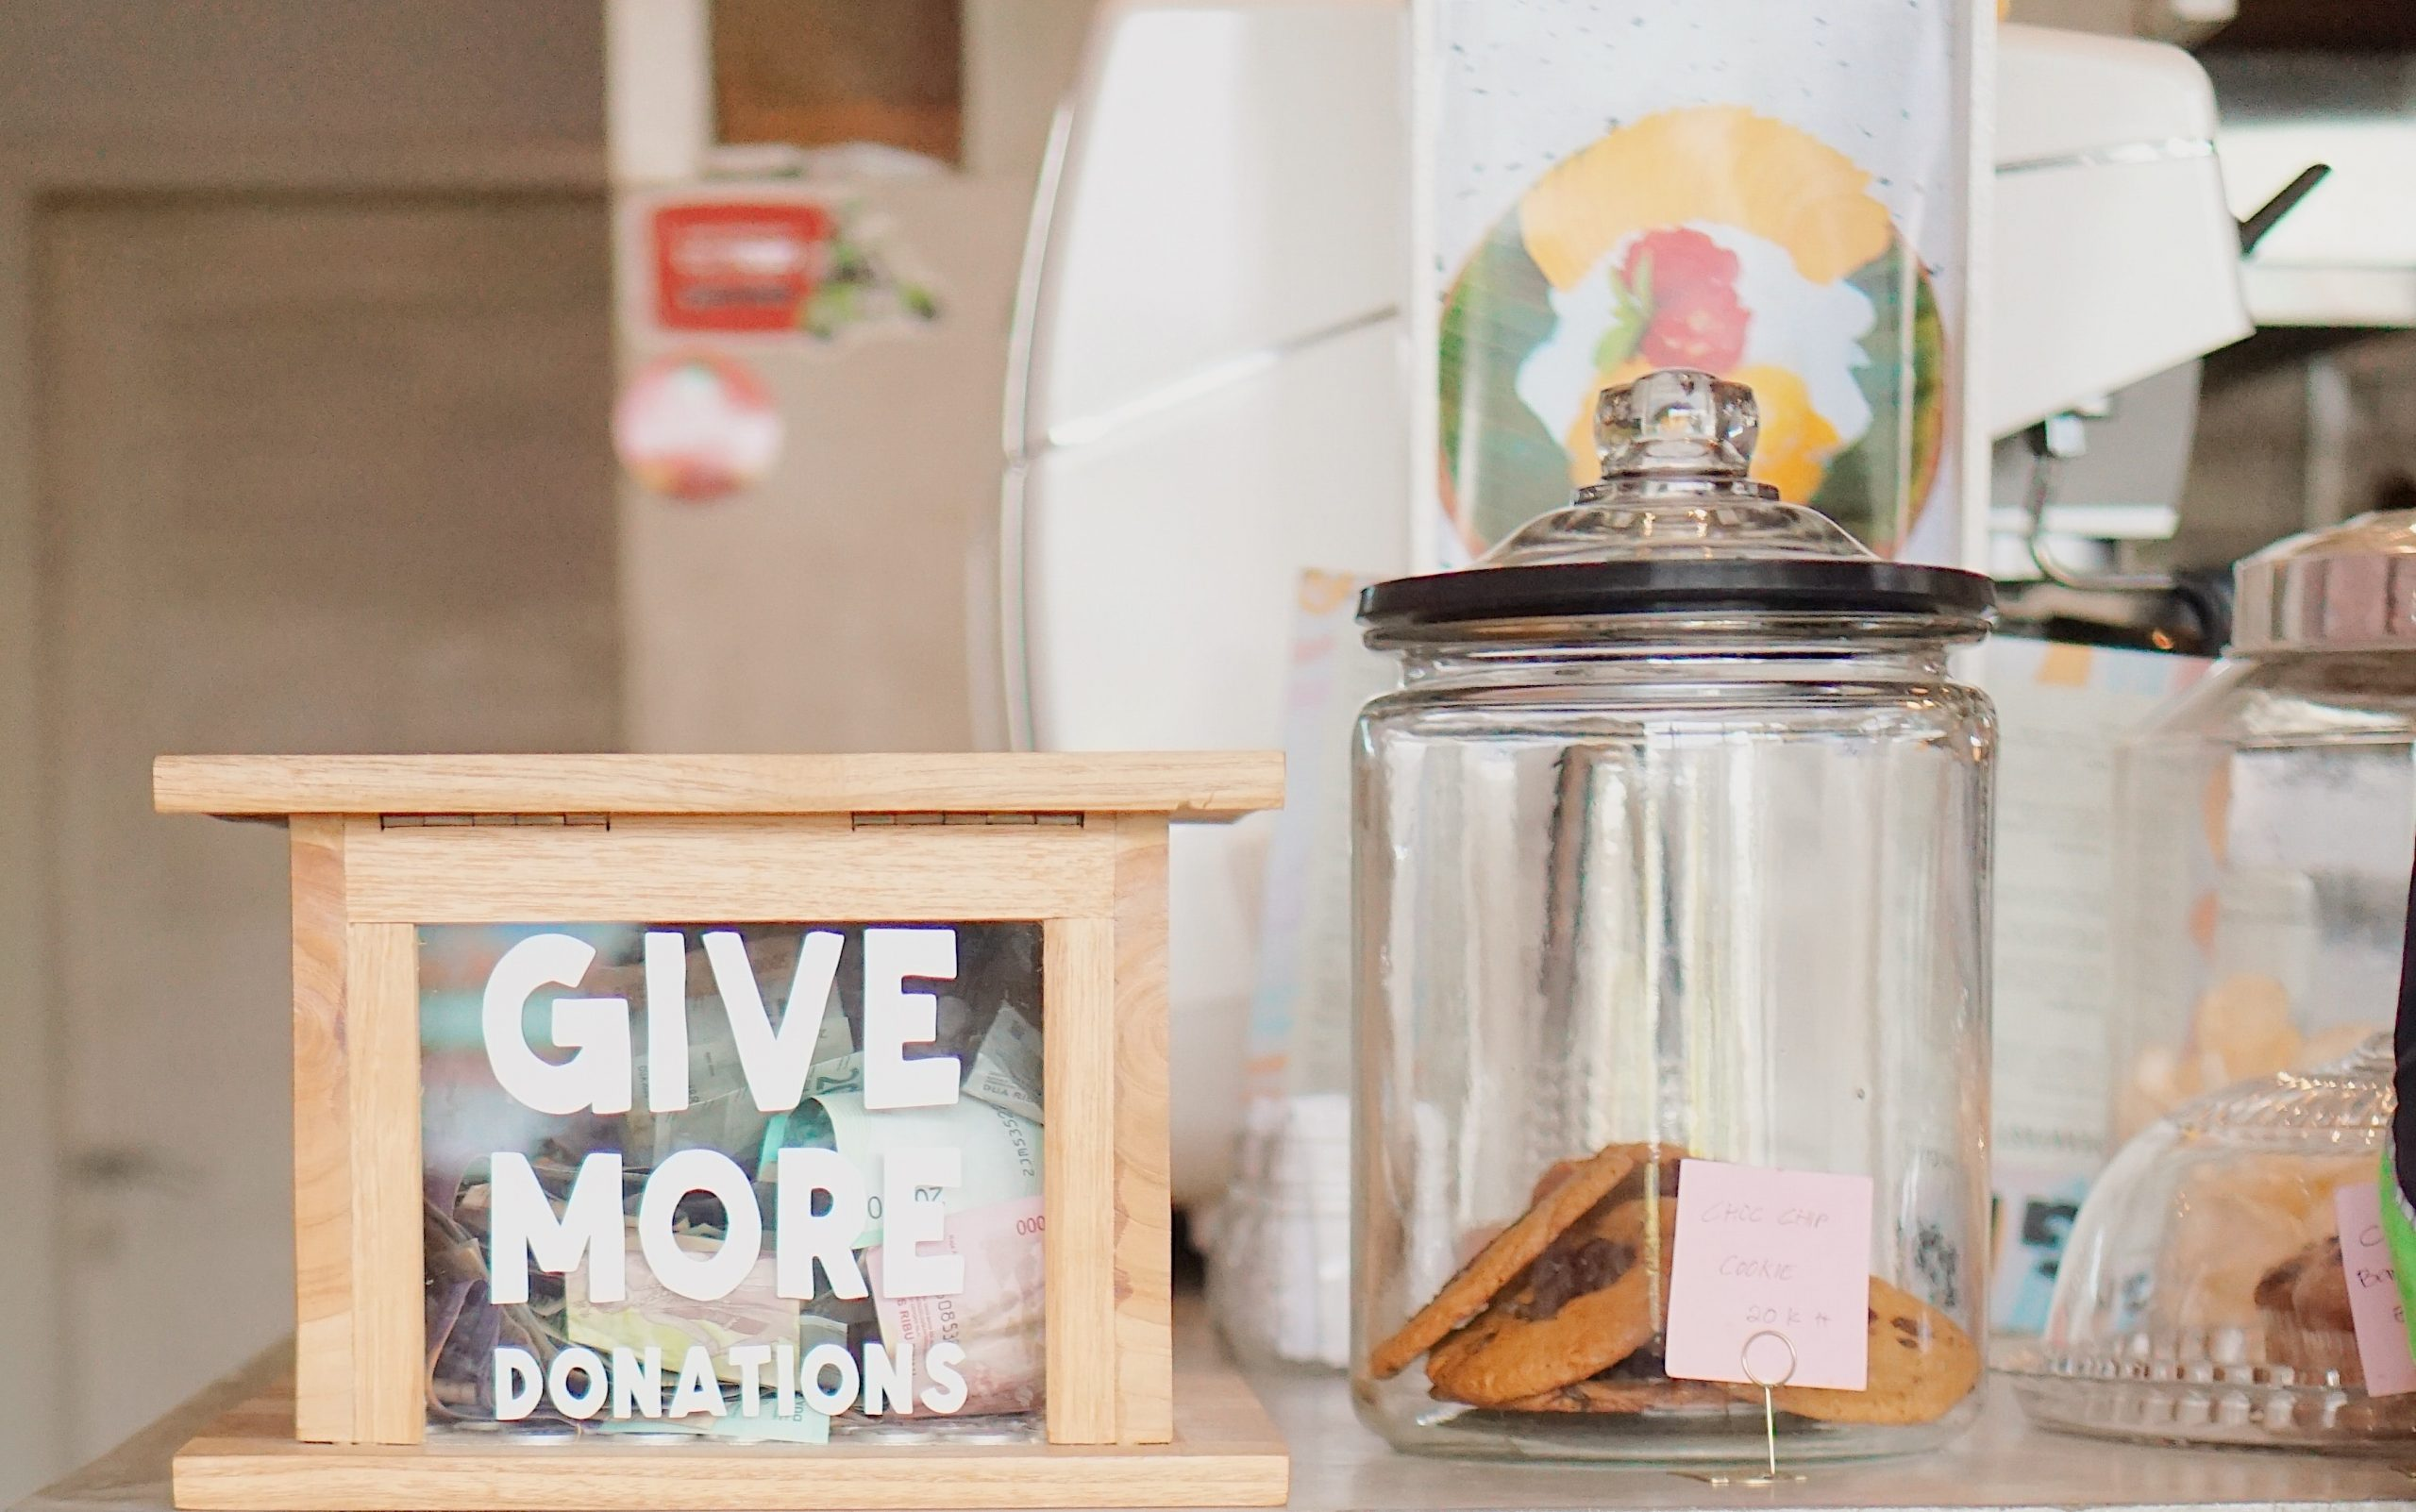 donation event to raise money with fundraising